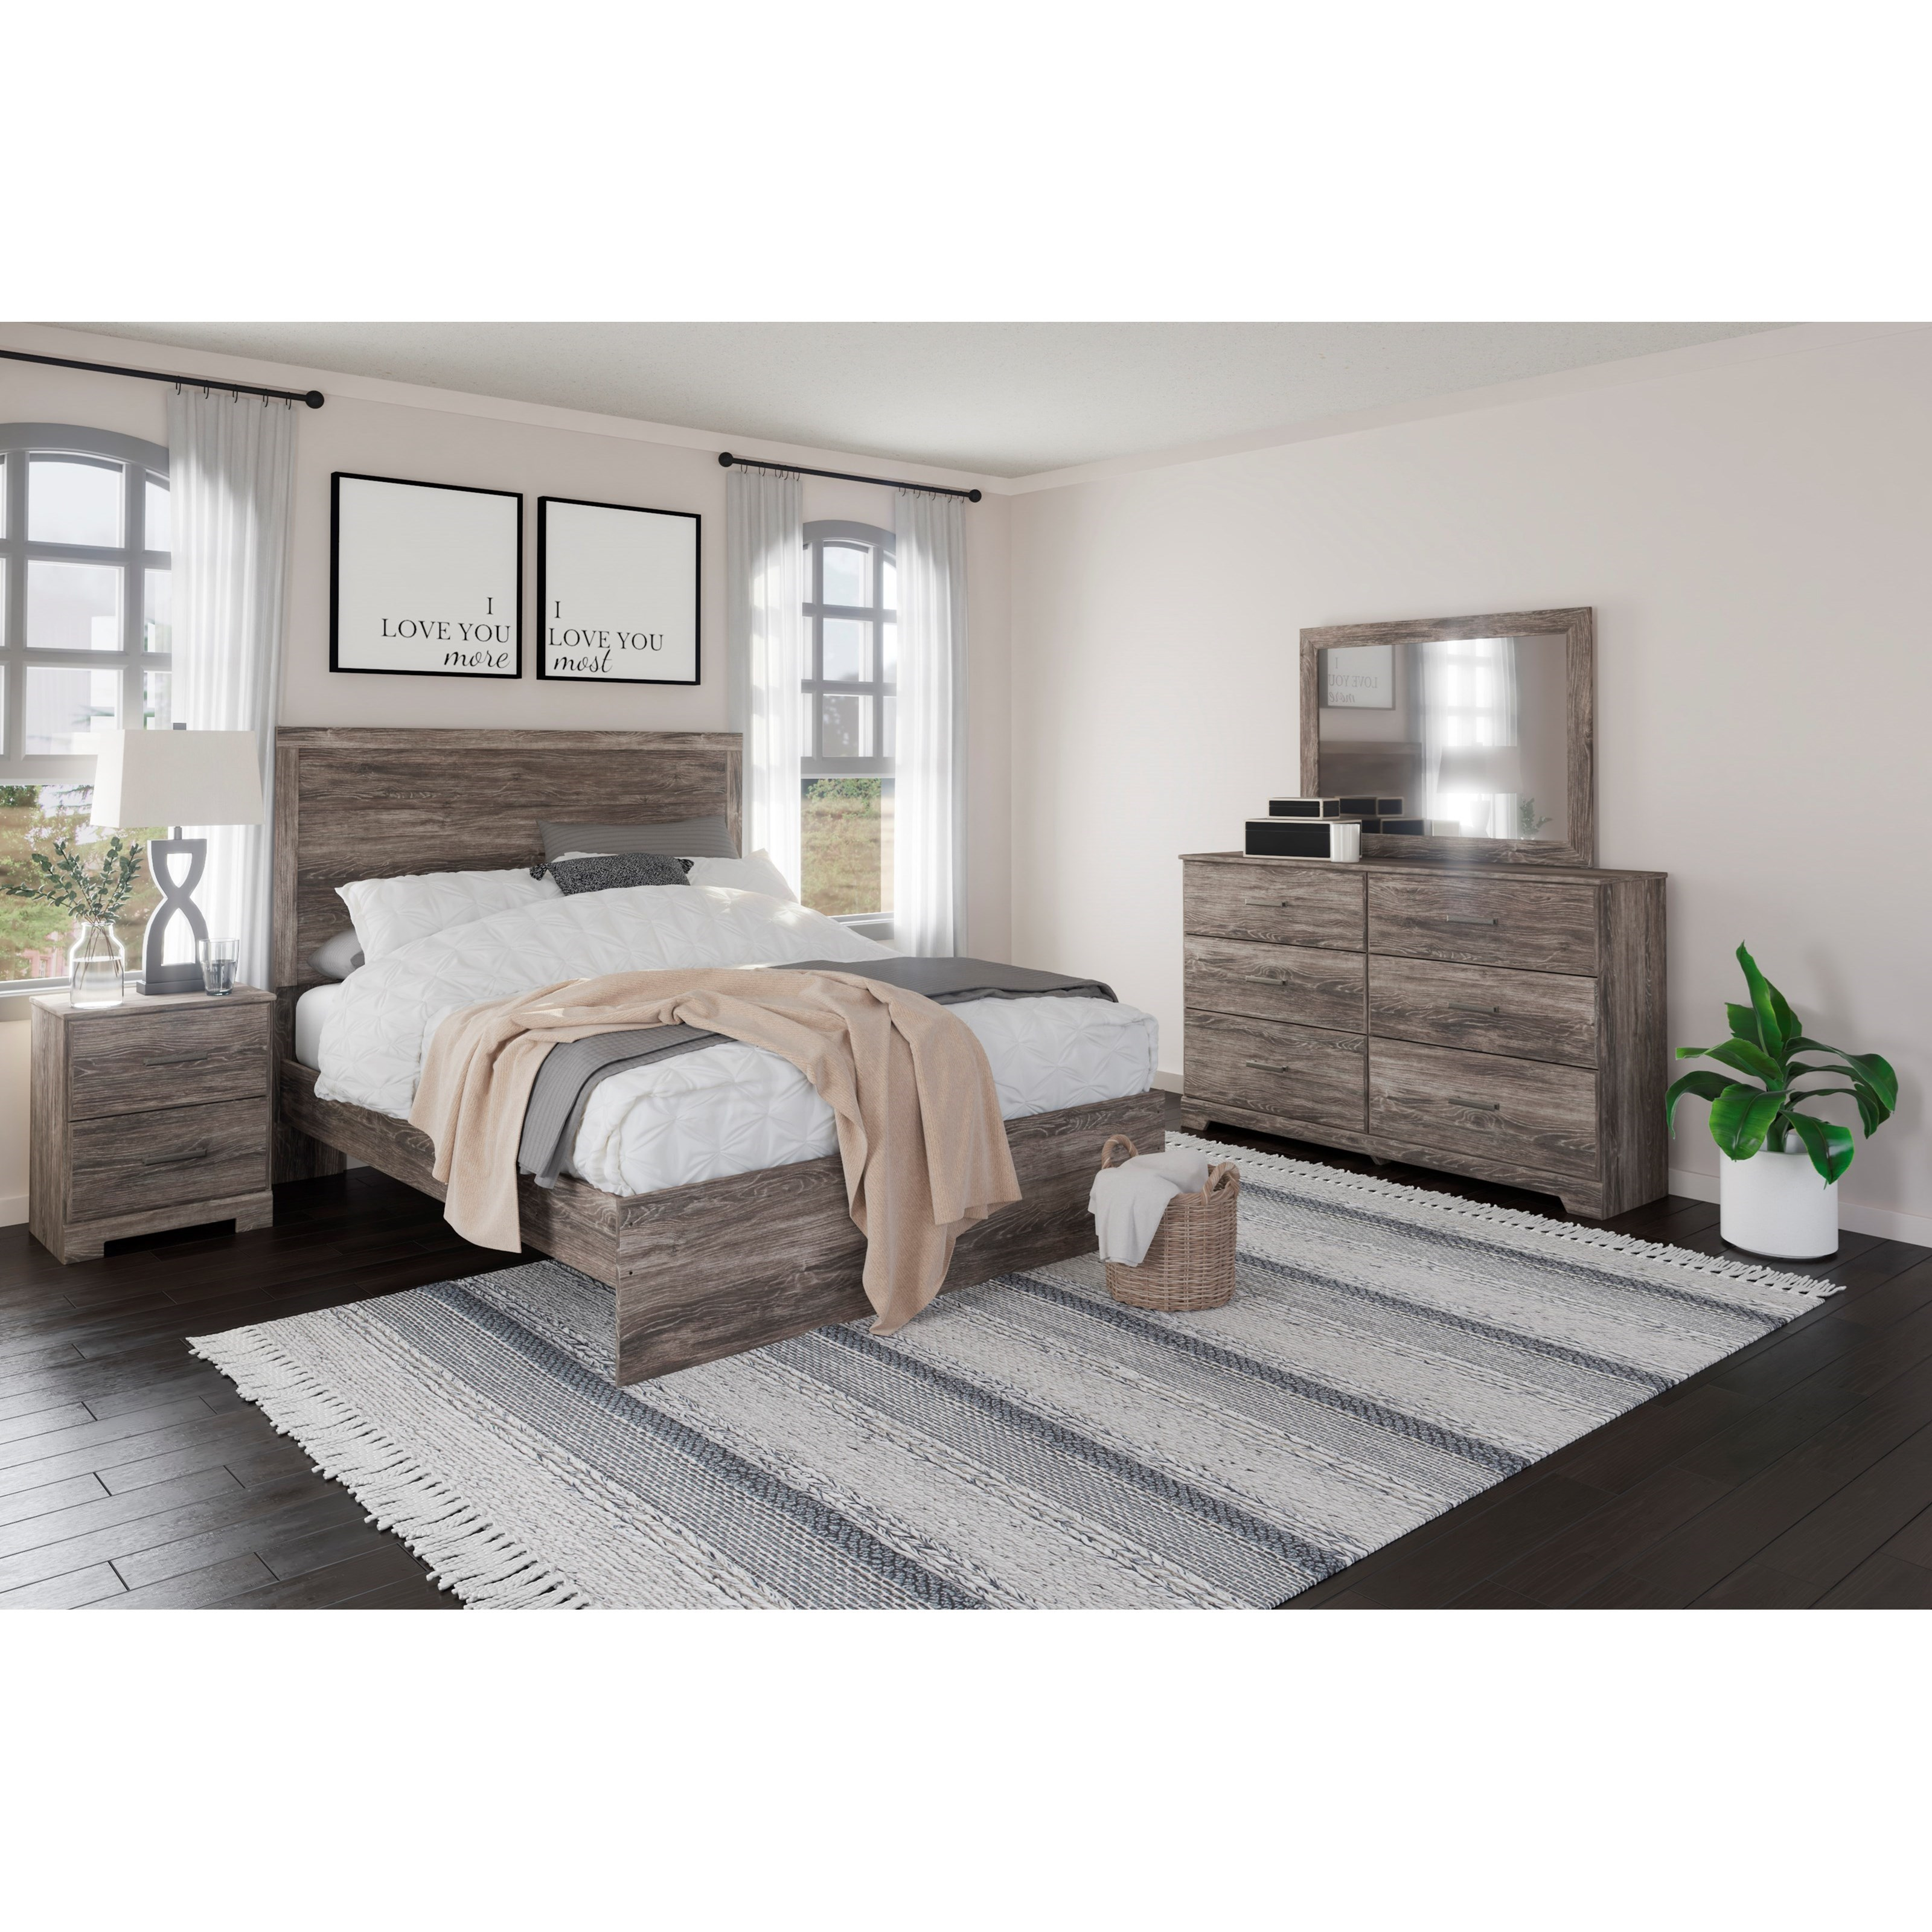 Ralinski Queen Bedroom Group by Signature Design by Ashley at Zak's Warehouse Clearance Center